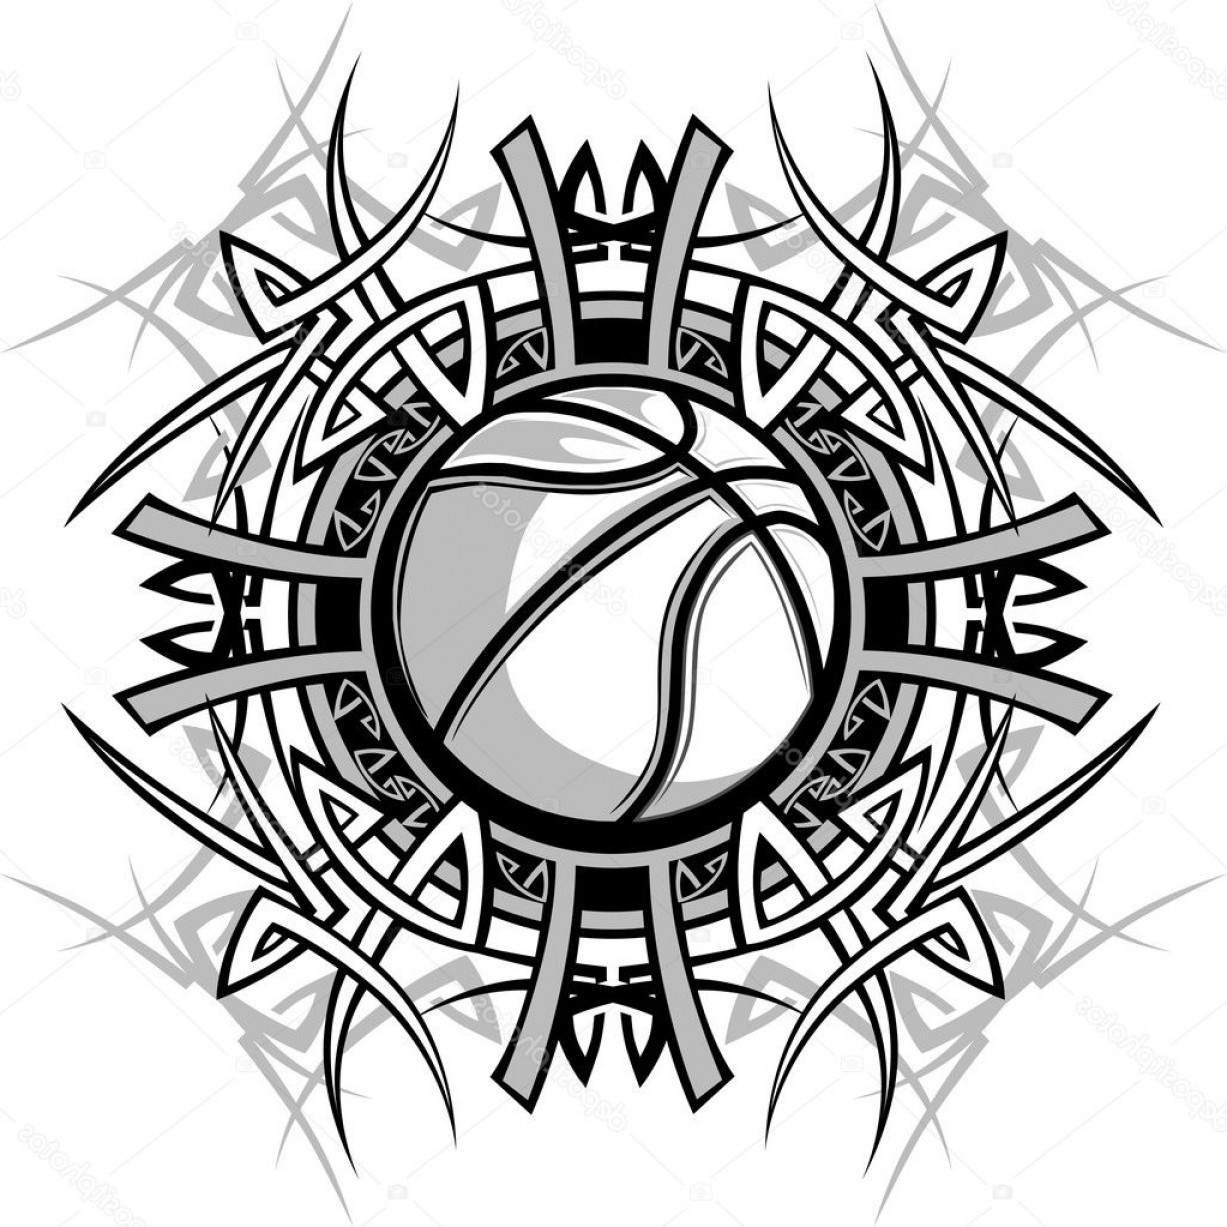 Basketball Vector Graphic Designs: Stock Illustration Basketball With Tribal Borders Vector